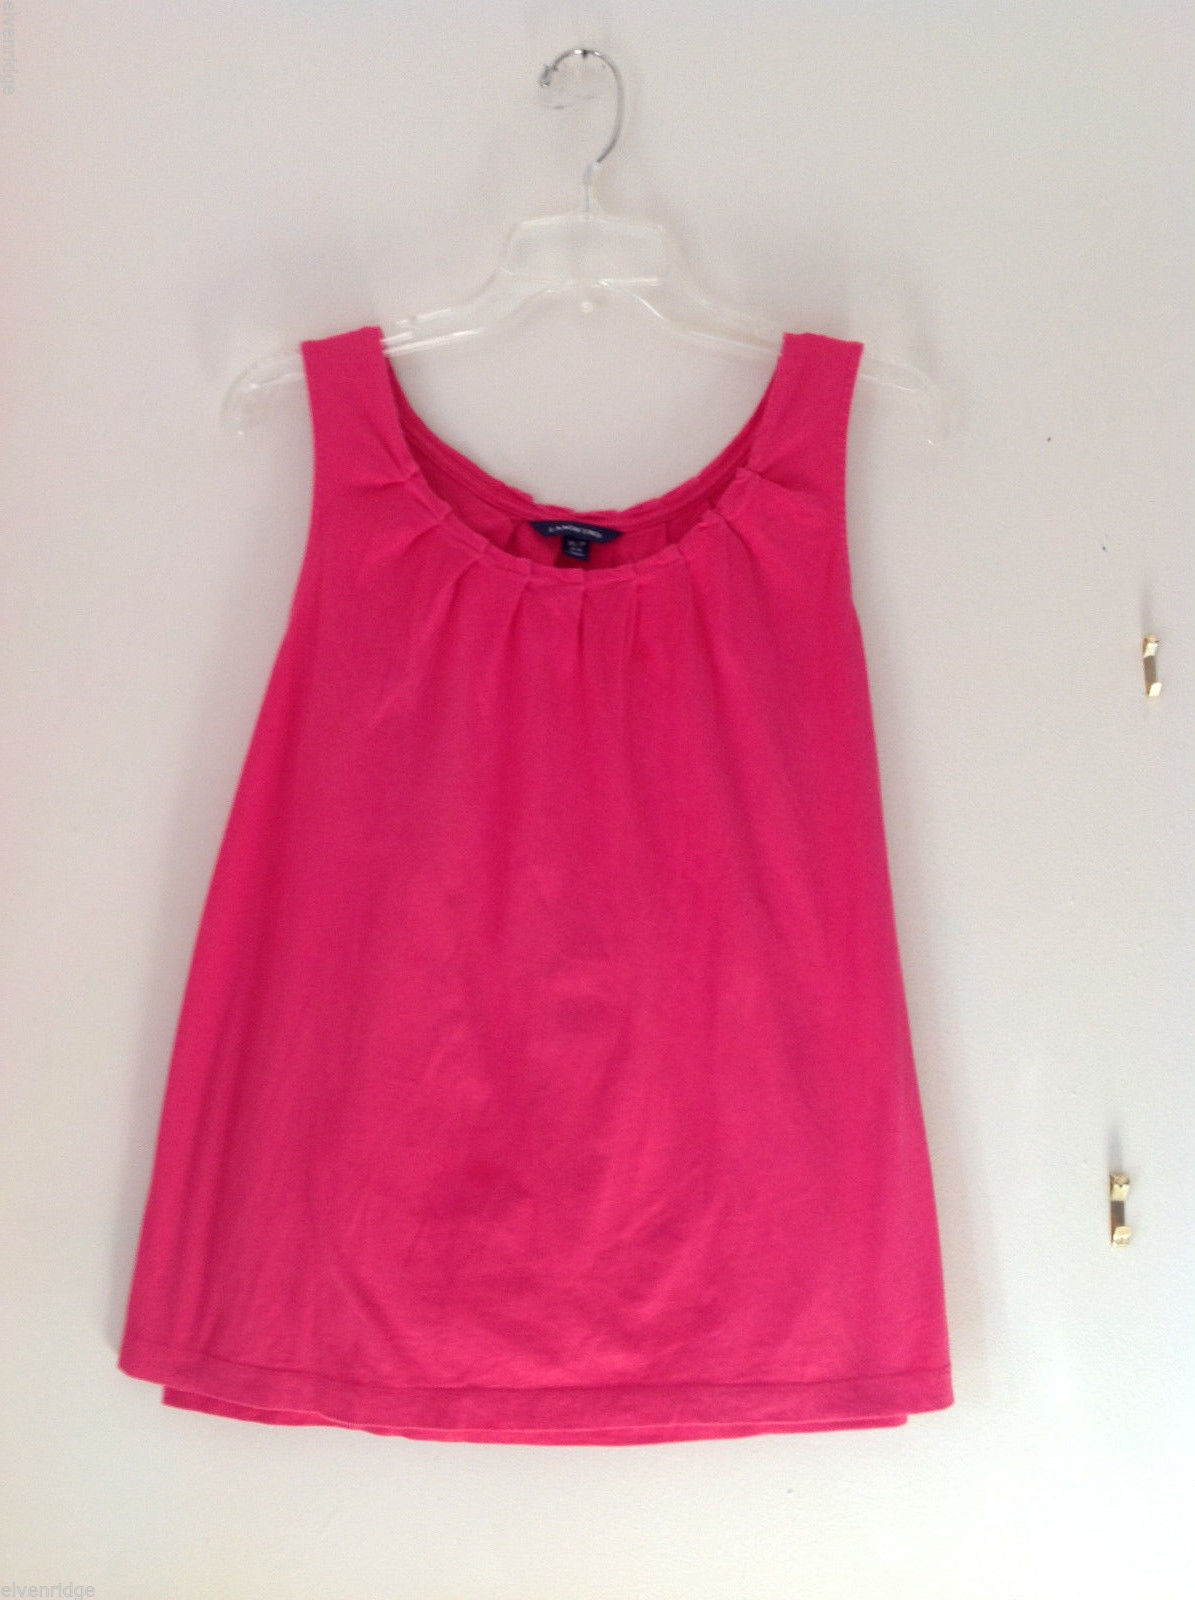 Lands' End Womens' Size MP Ruffled Gathered Neck Tank Top Hot Watermelon Pink